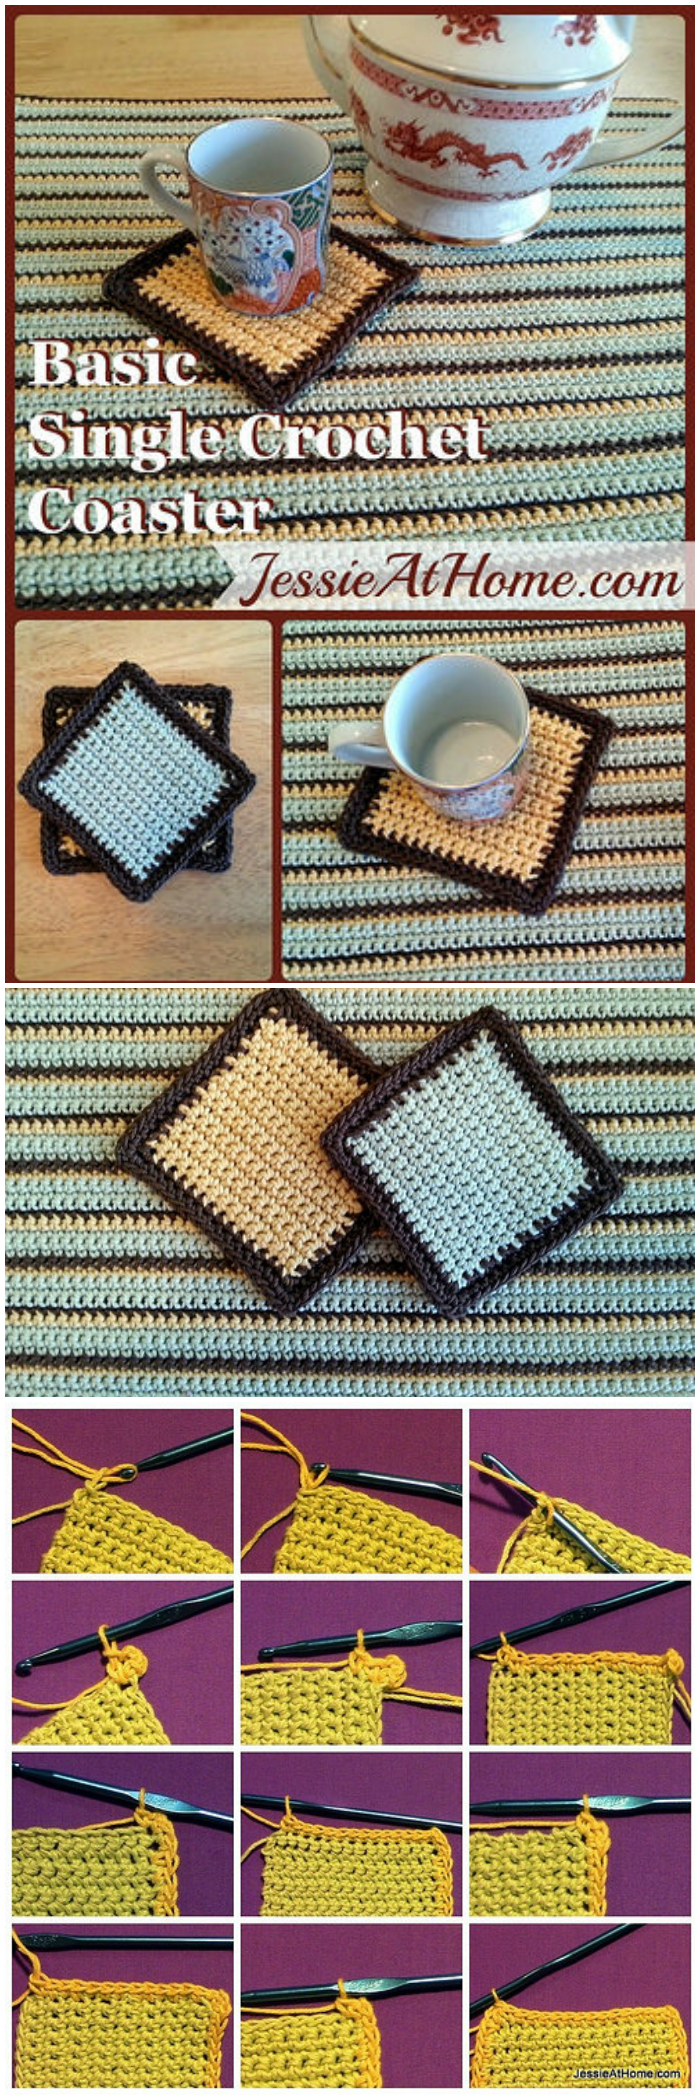 Basic Single Crochet Coaster - free crochet coaster patterns | Free Crochet Coaster Patterns